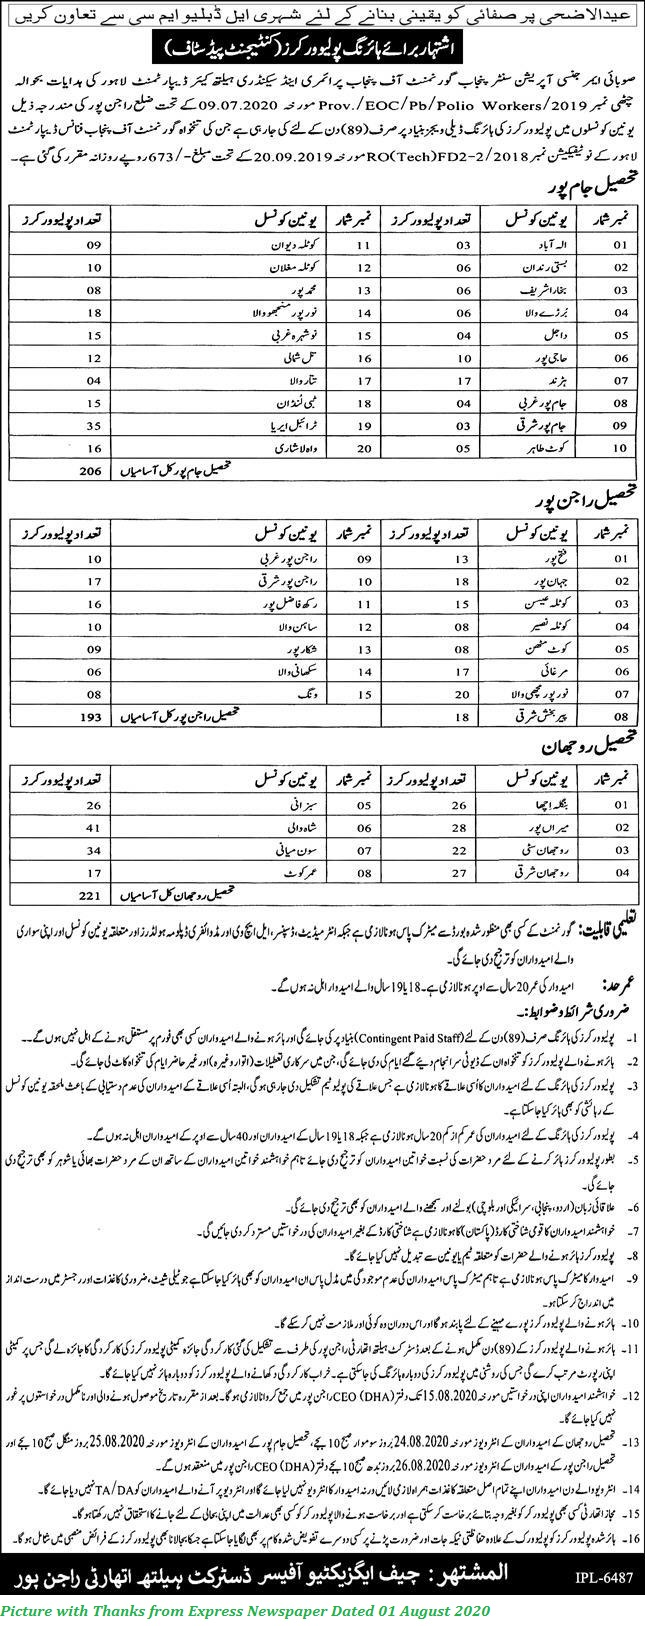 Health Care Department Govt of Punjab Polio Workers Jobs in District Rajanpur 600+ Posts